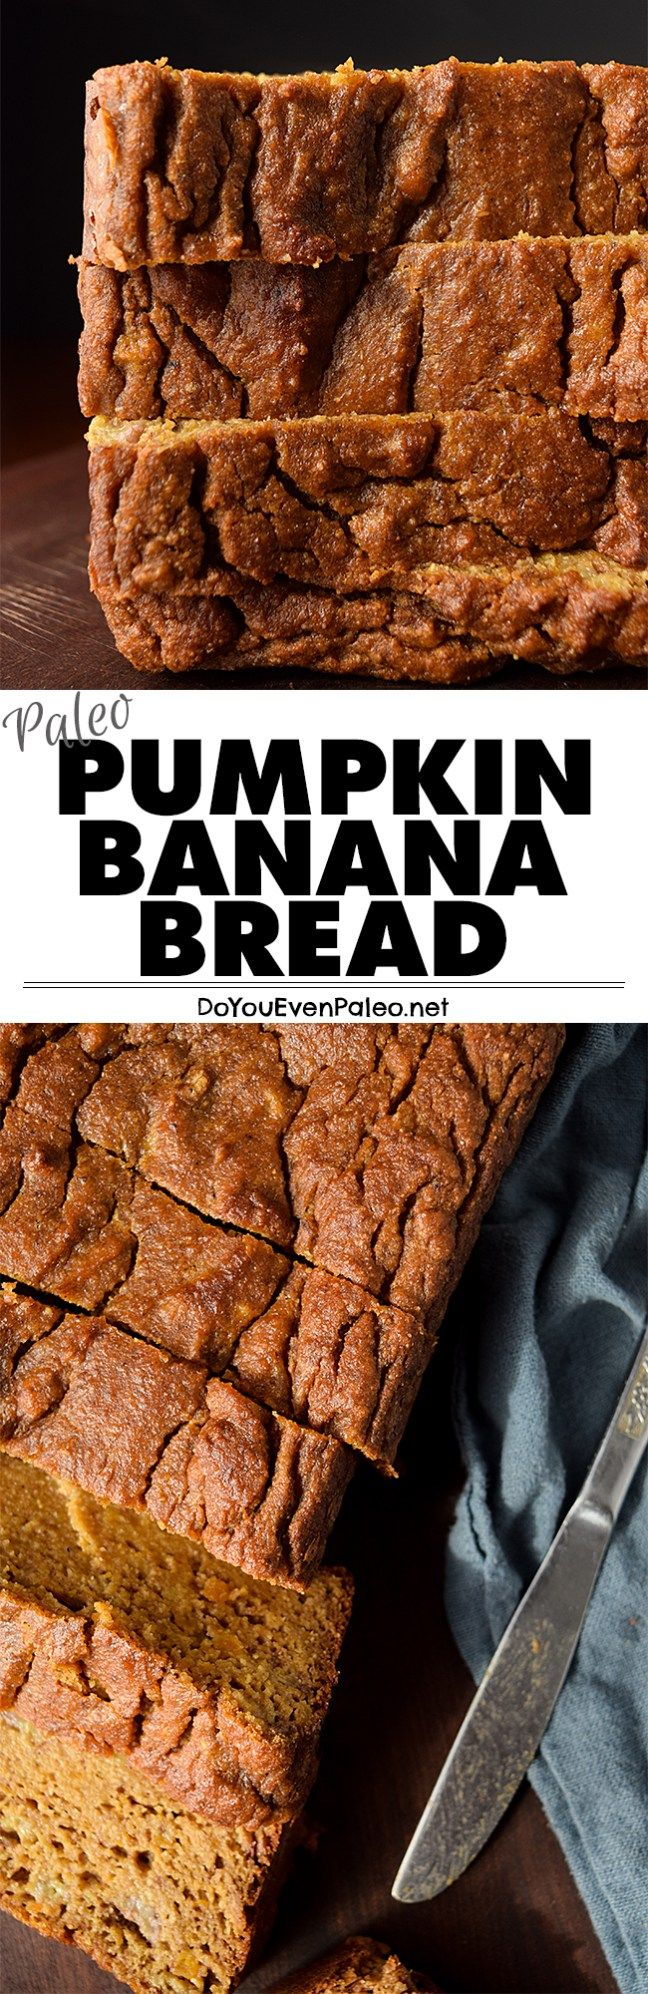 Paleo Pumpkin Banana Bread recipe - a combination of two popular quick breads! This healthy recipe is gluten free, paleo, clean eating, and vegetarian. Perfect for breakfast or a snack! | DoYouEvenPaleo.net #paleo #glutenfree #doyouevenpaleo